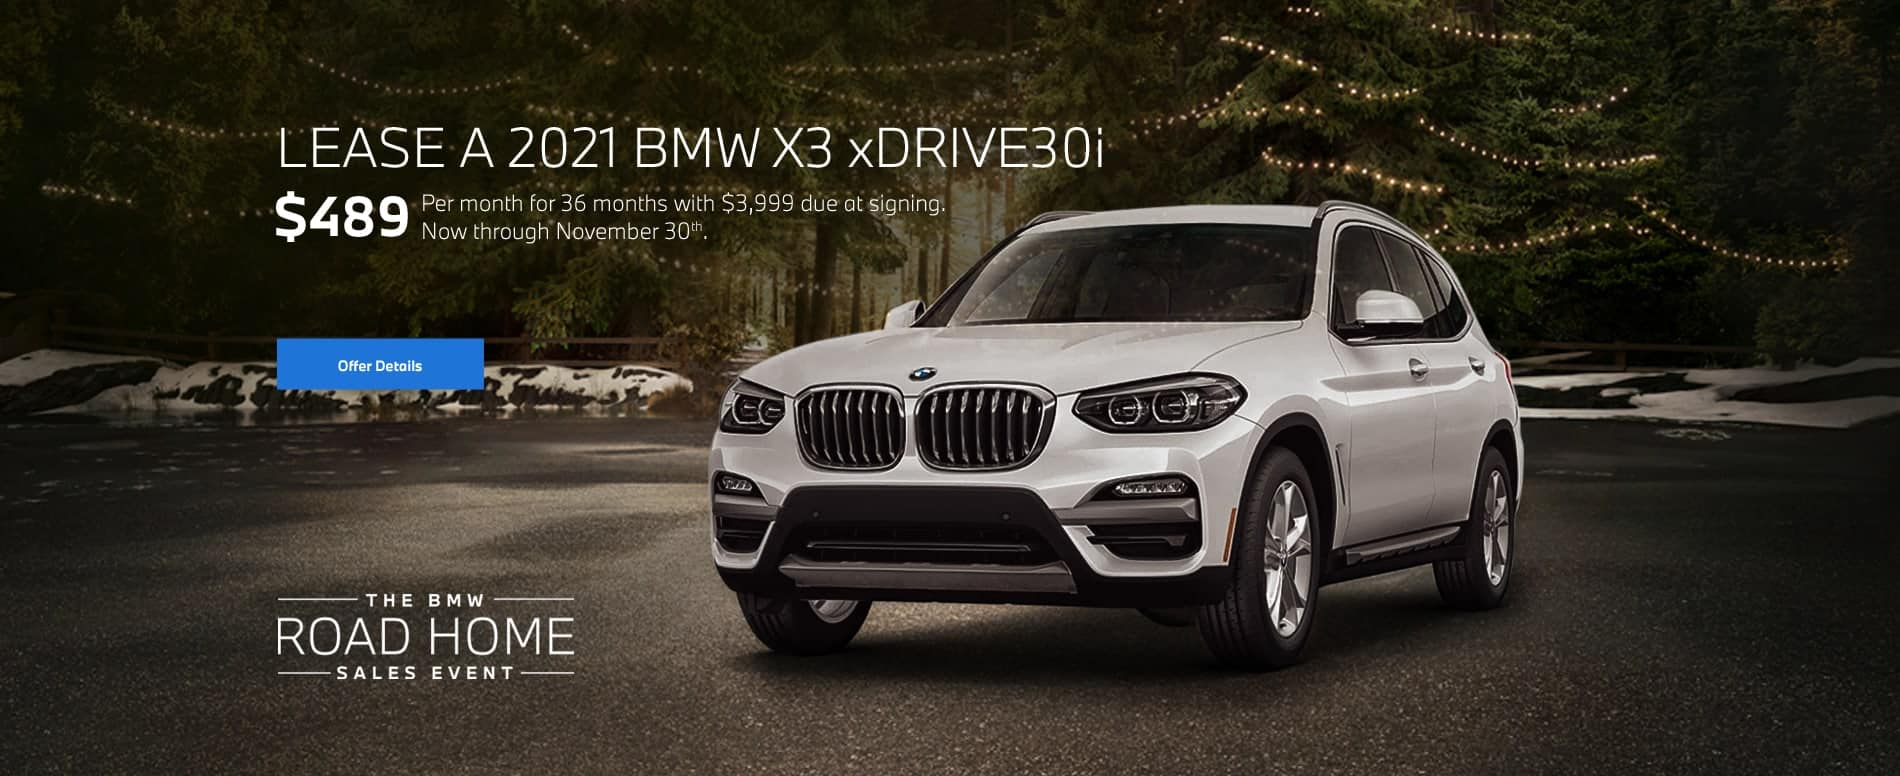 2021 BMW X3 xDrive30i Lease for $489/mo